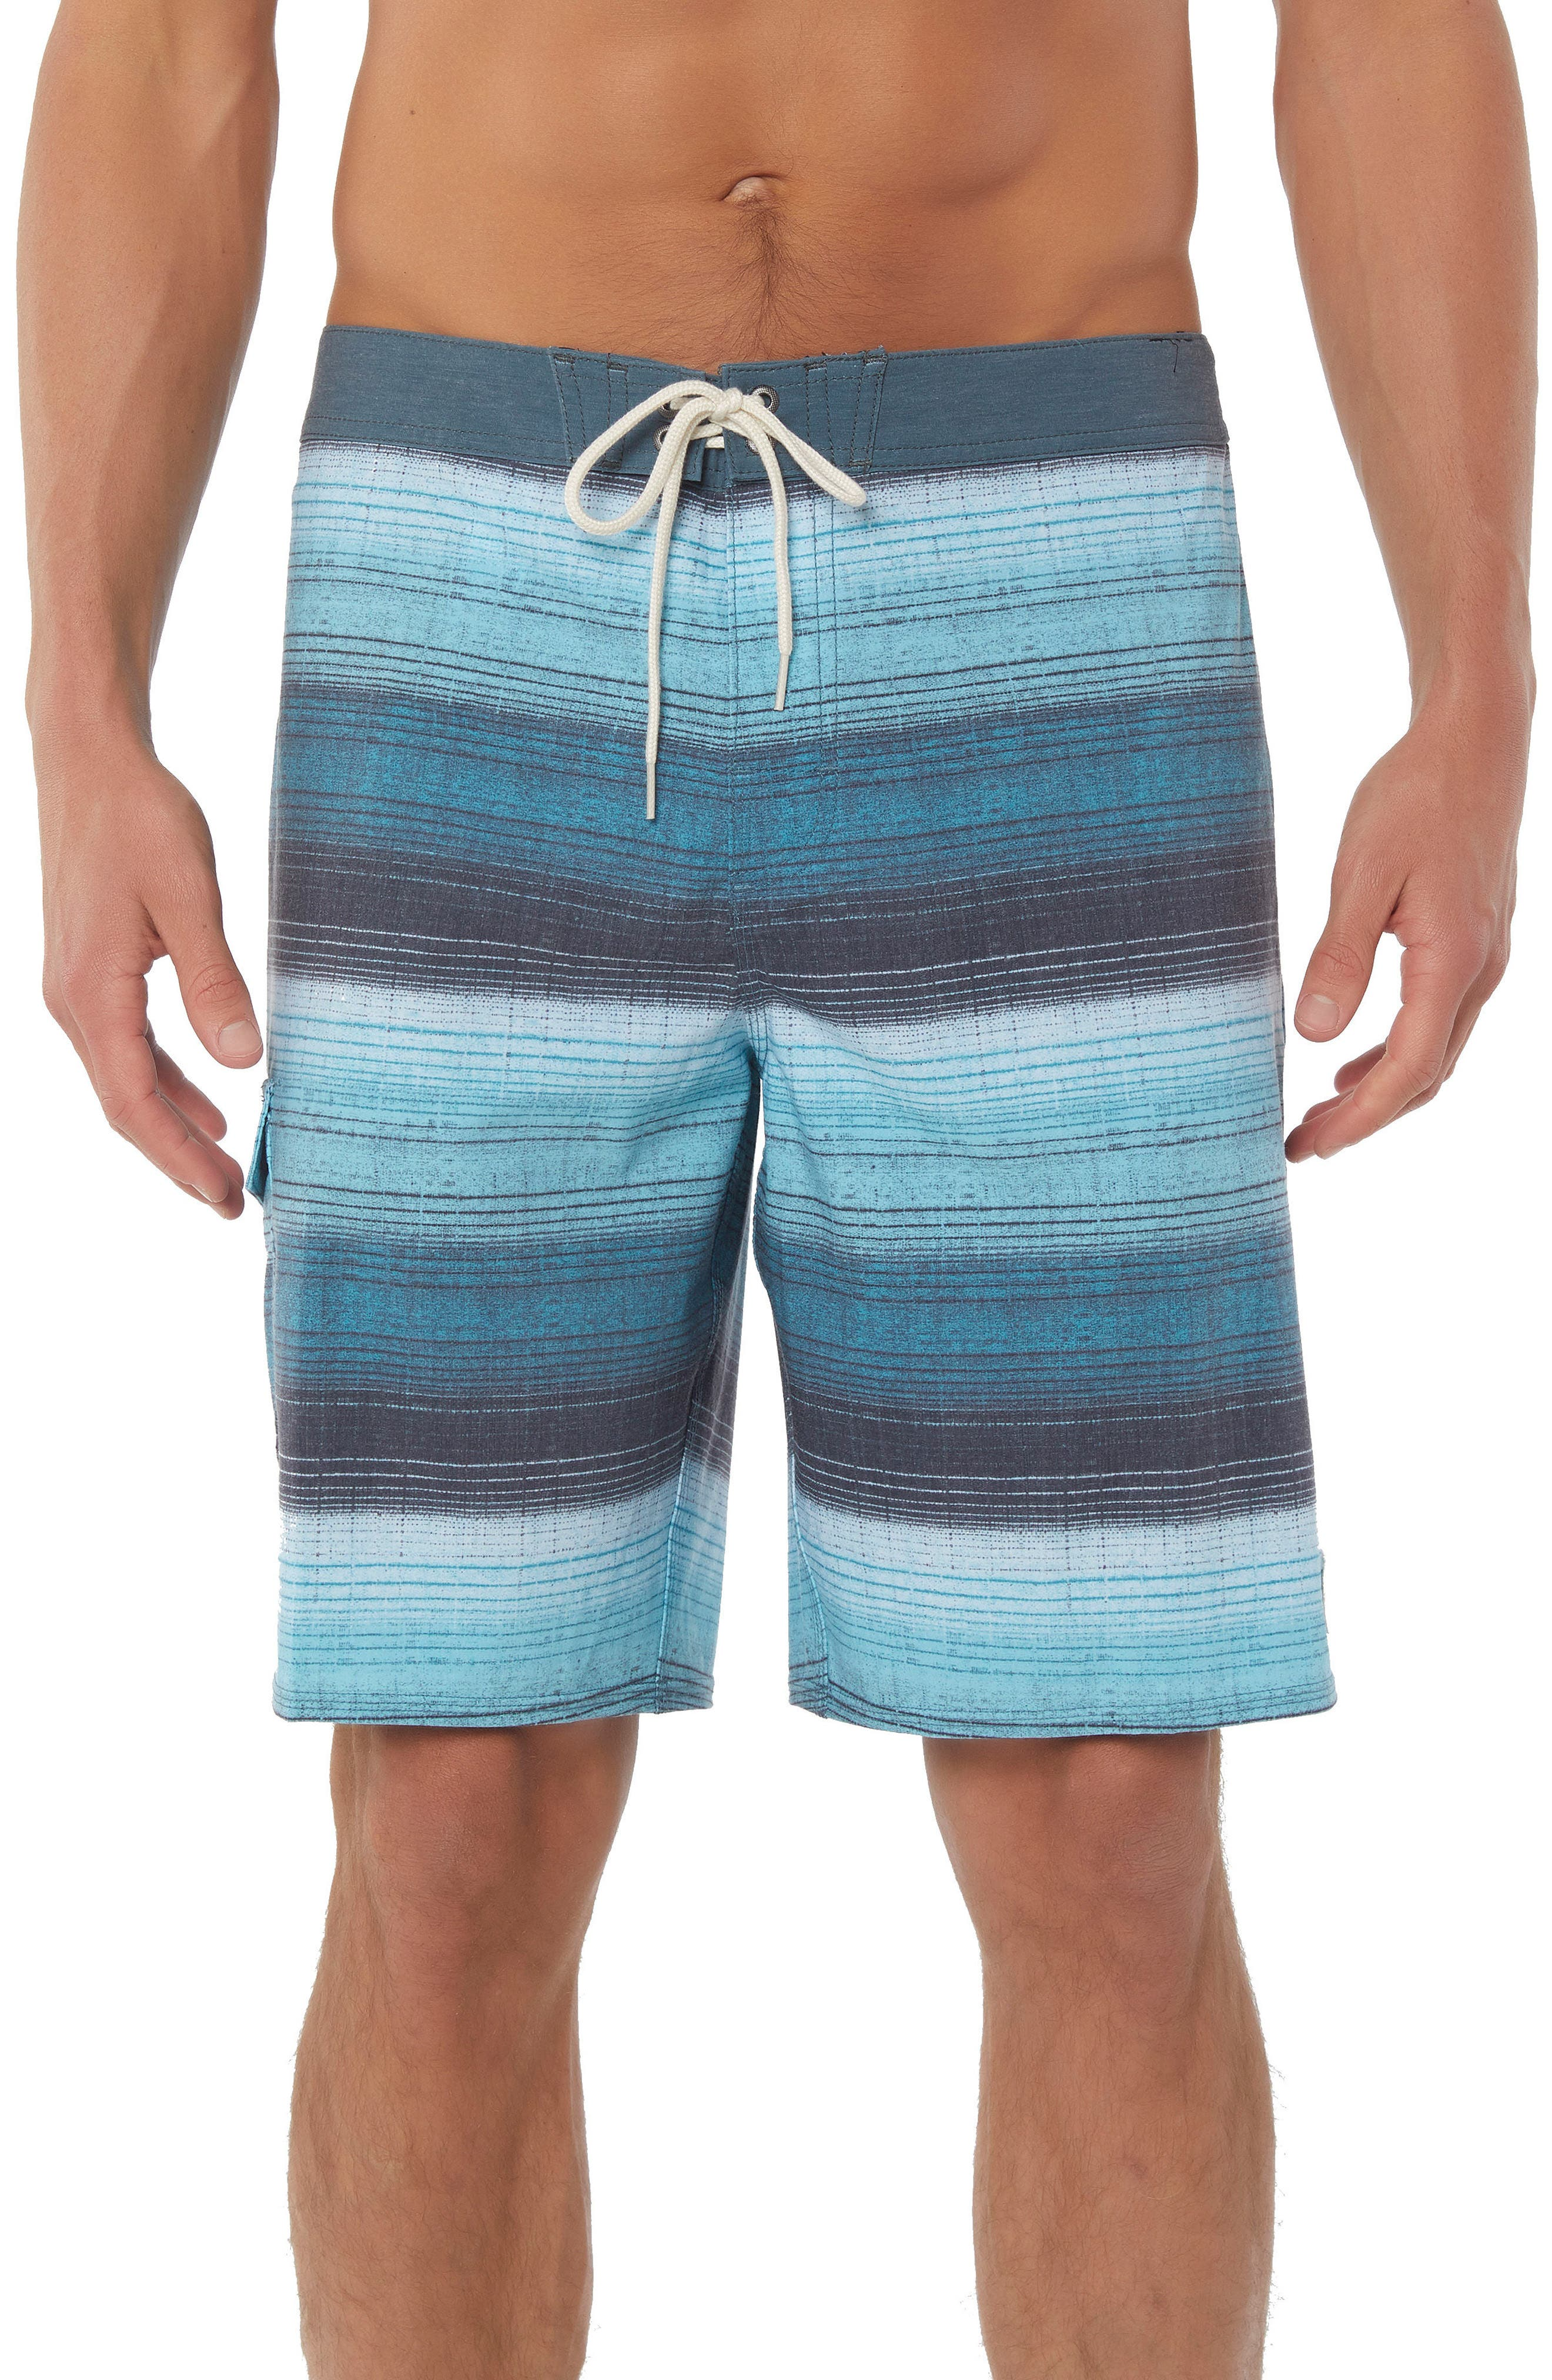 Barrels Swim Trunks,                             Main thumbnail 1, color,                             431